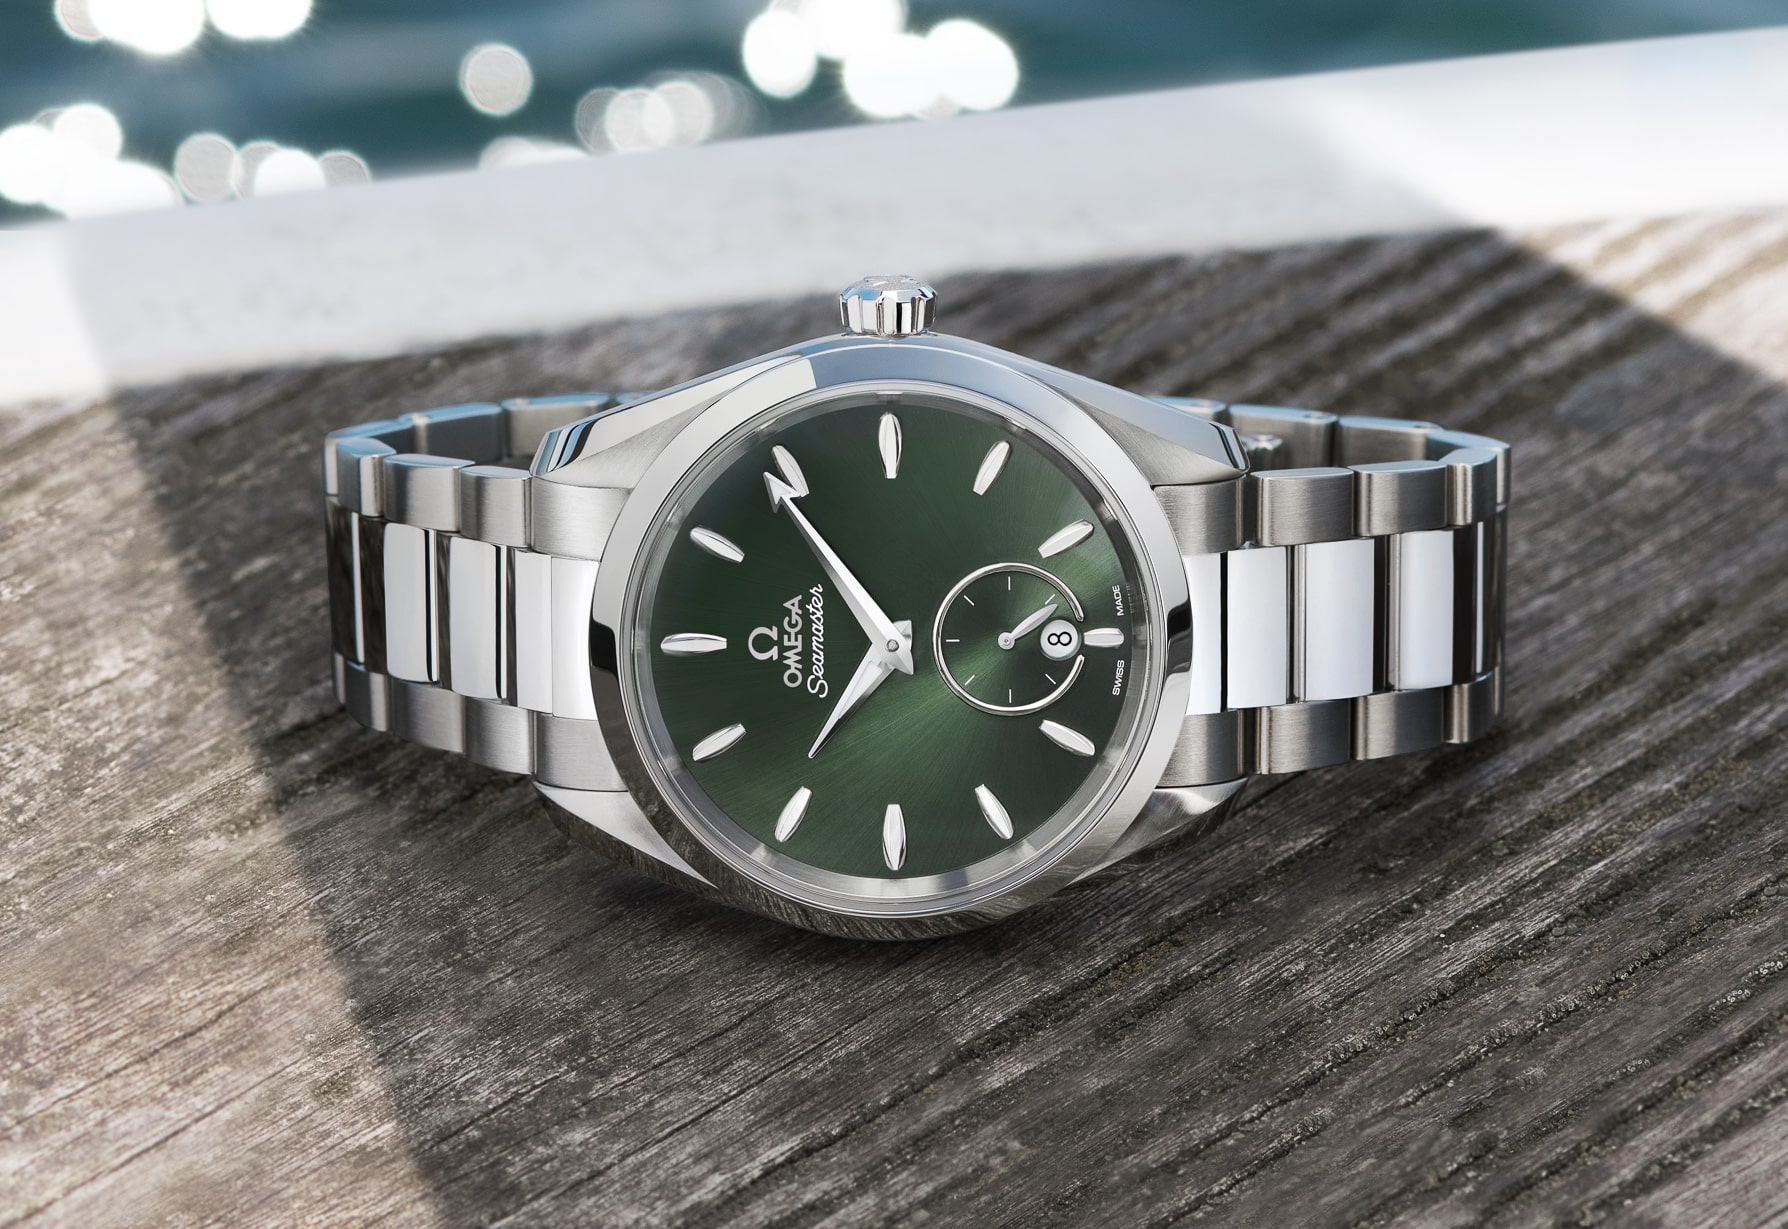 Introducing the OMEGA Seamaster Aqua Terra Small Seconds collection